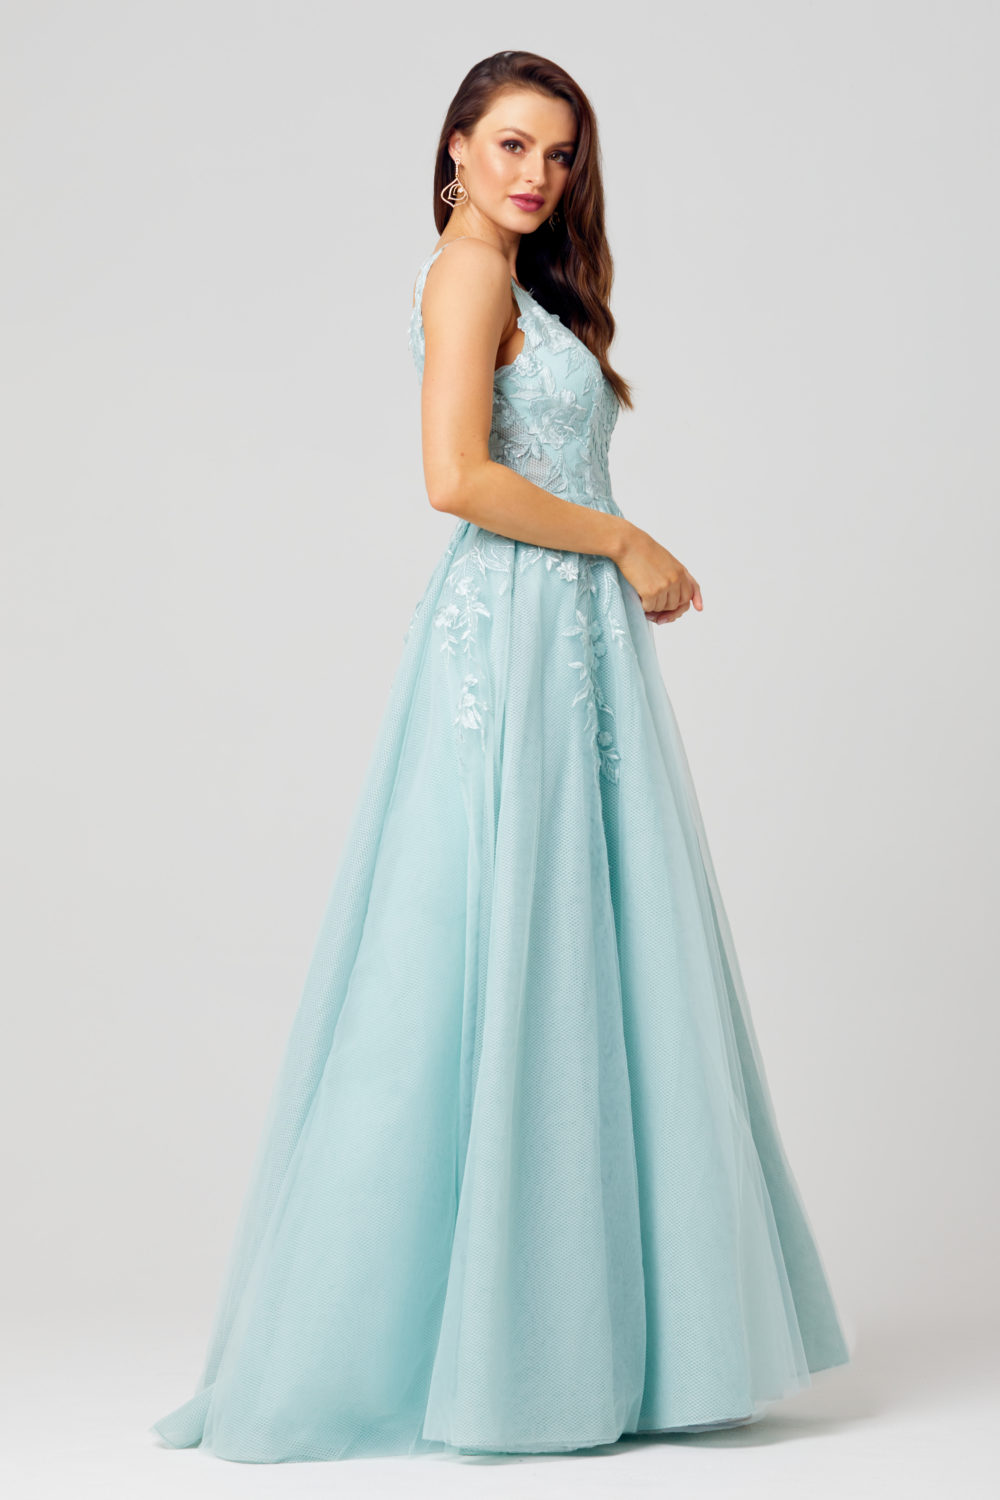 Cindy Sweetheart Formal Gown - TC274-Side